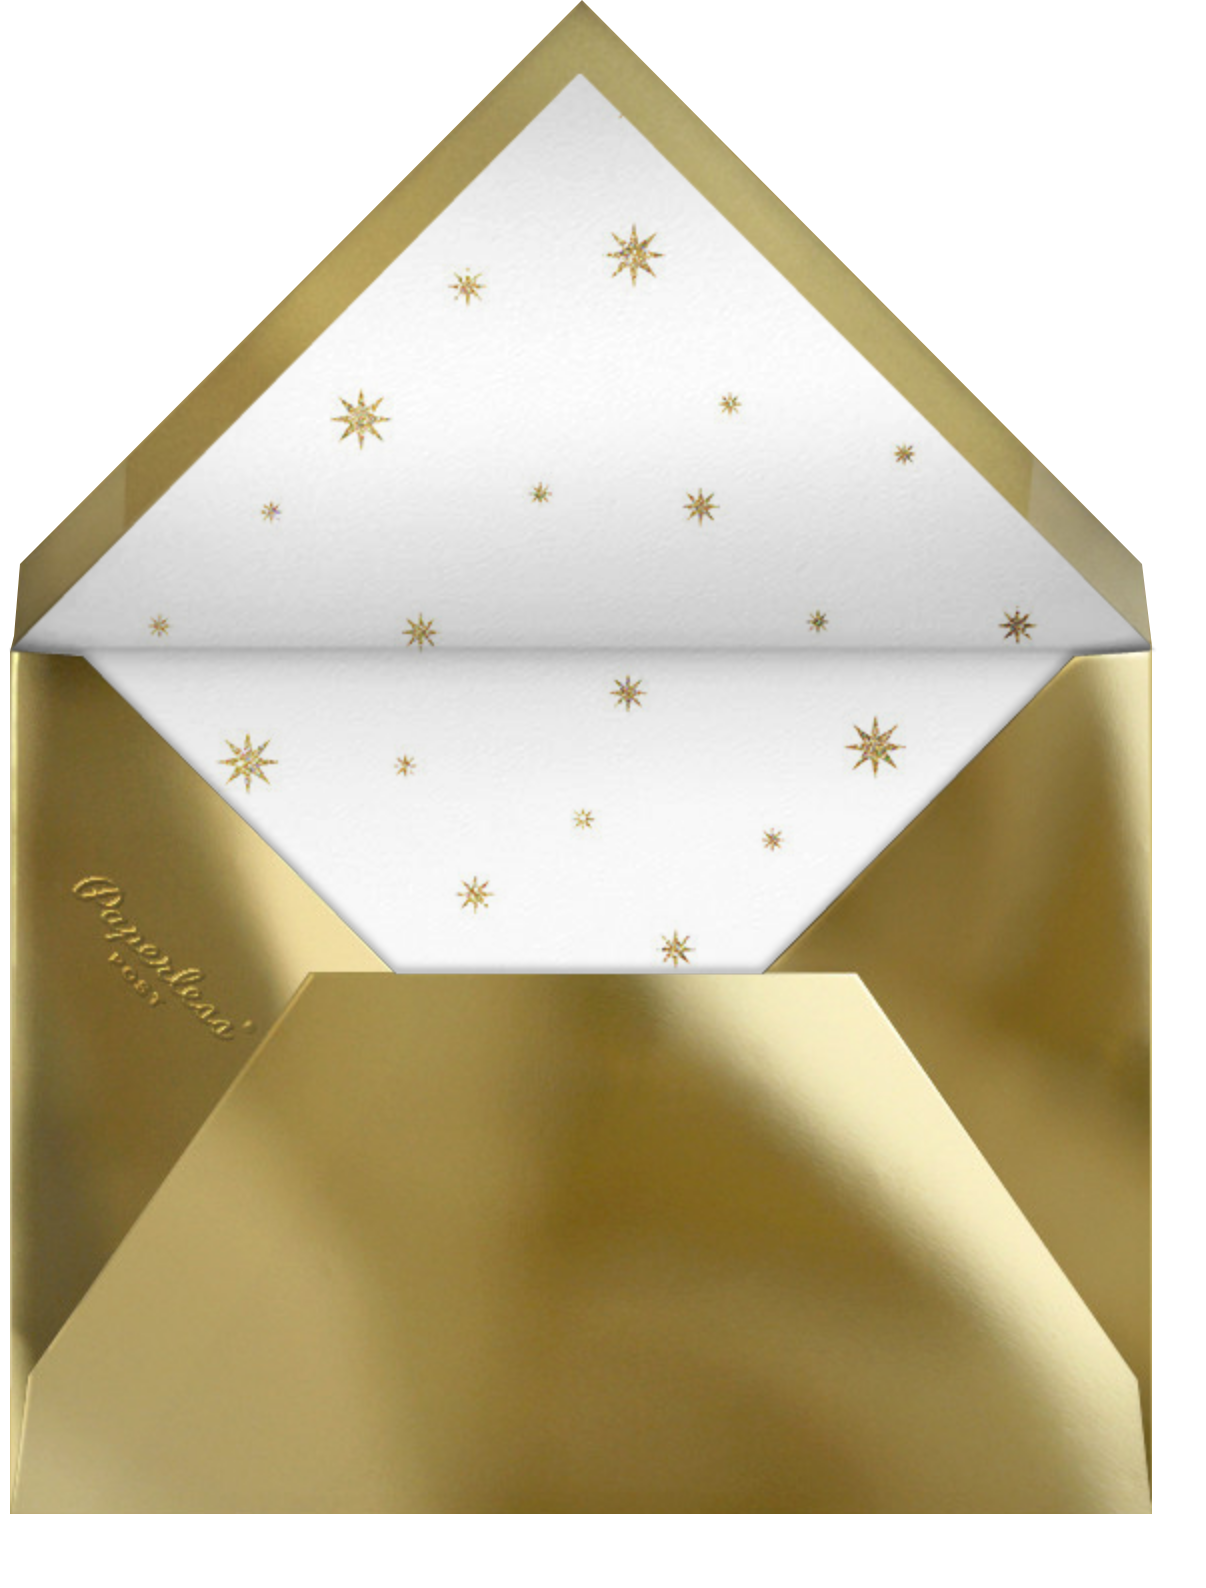 Holiday Down Under - Paperless Post - Envelope